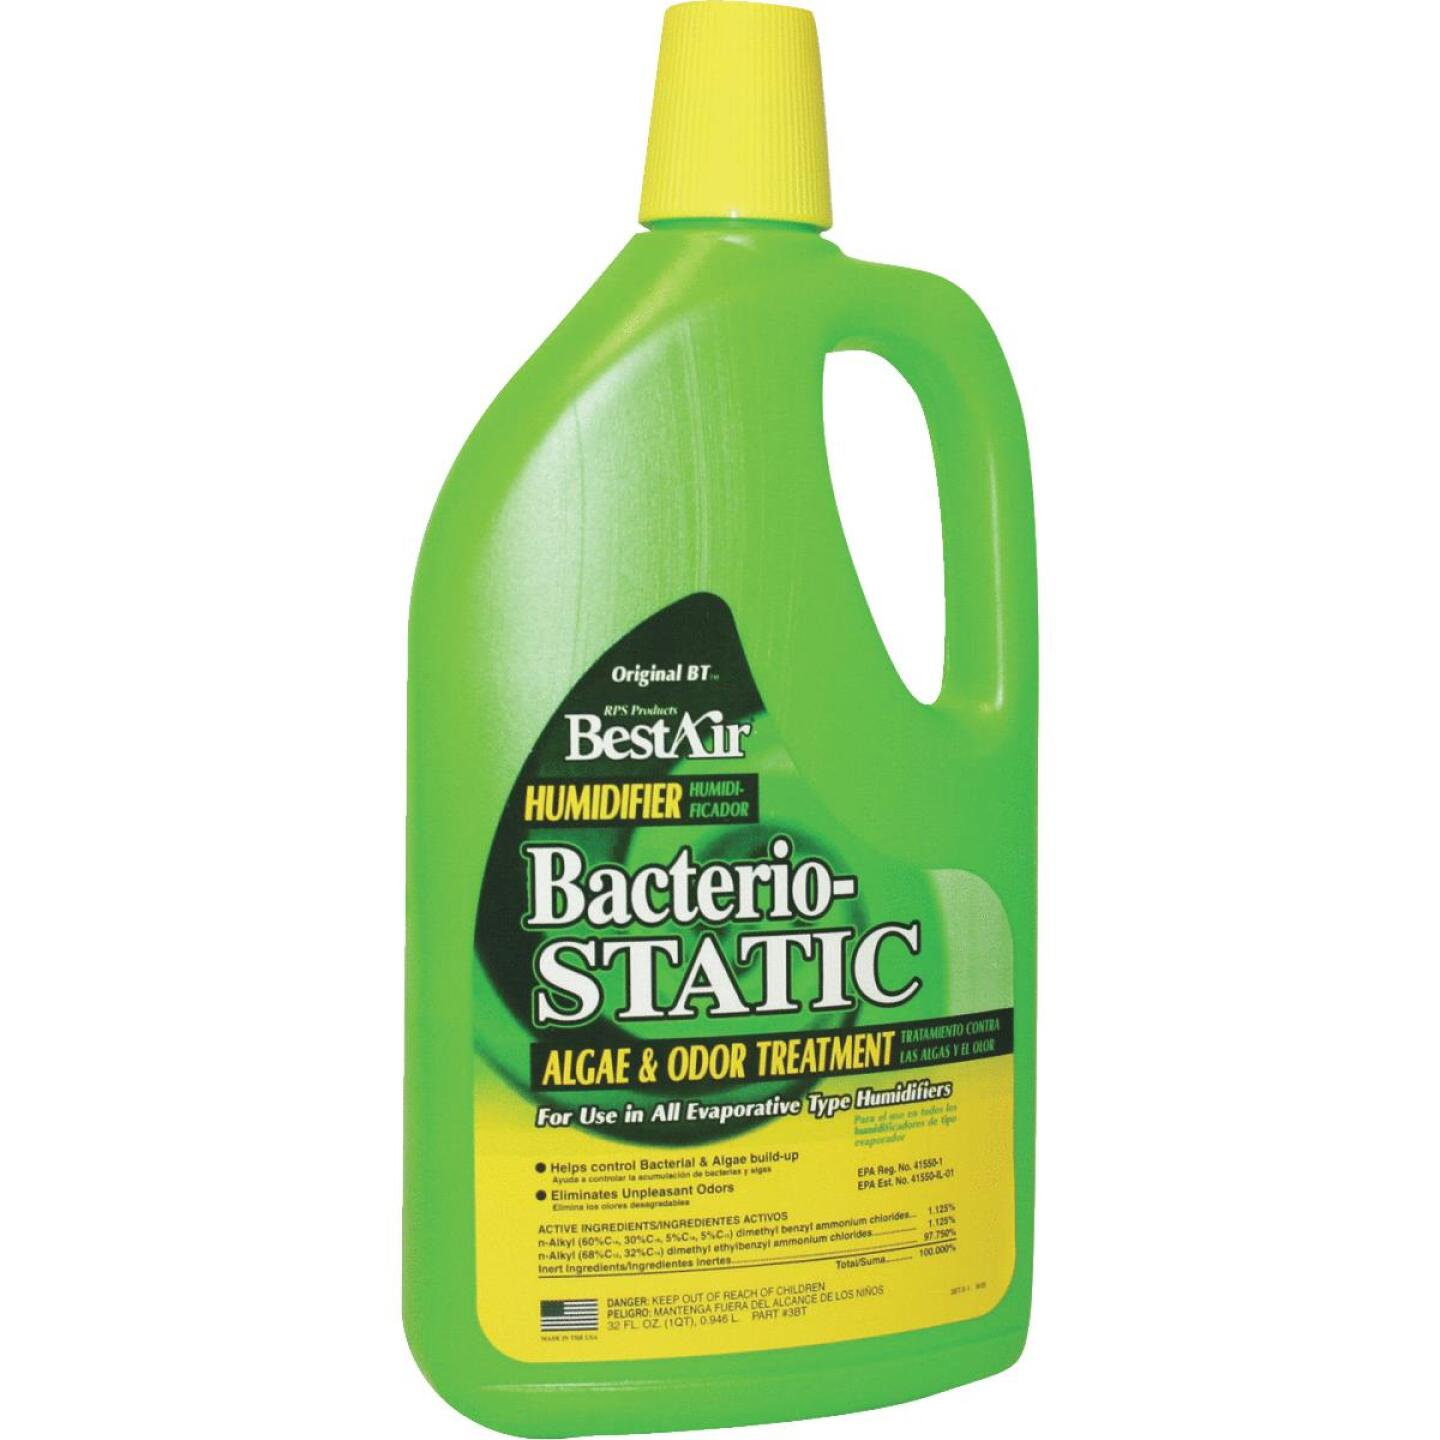 BestAir Bacteriostatic 32 Oz. Humidifier Water Treatment Image 1